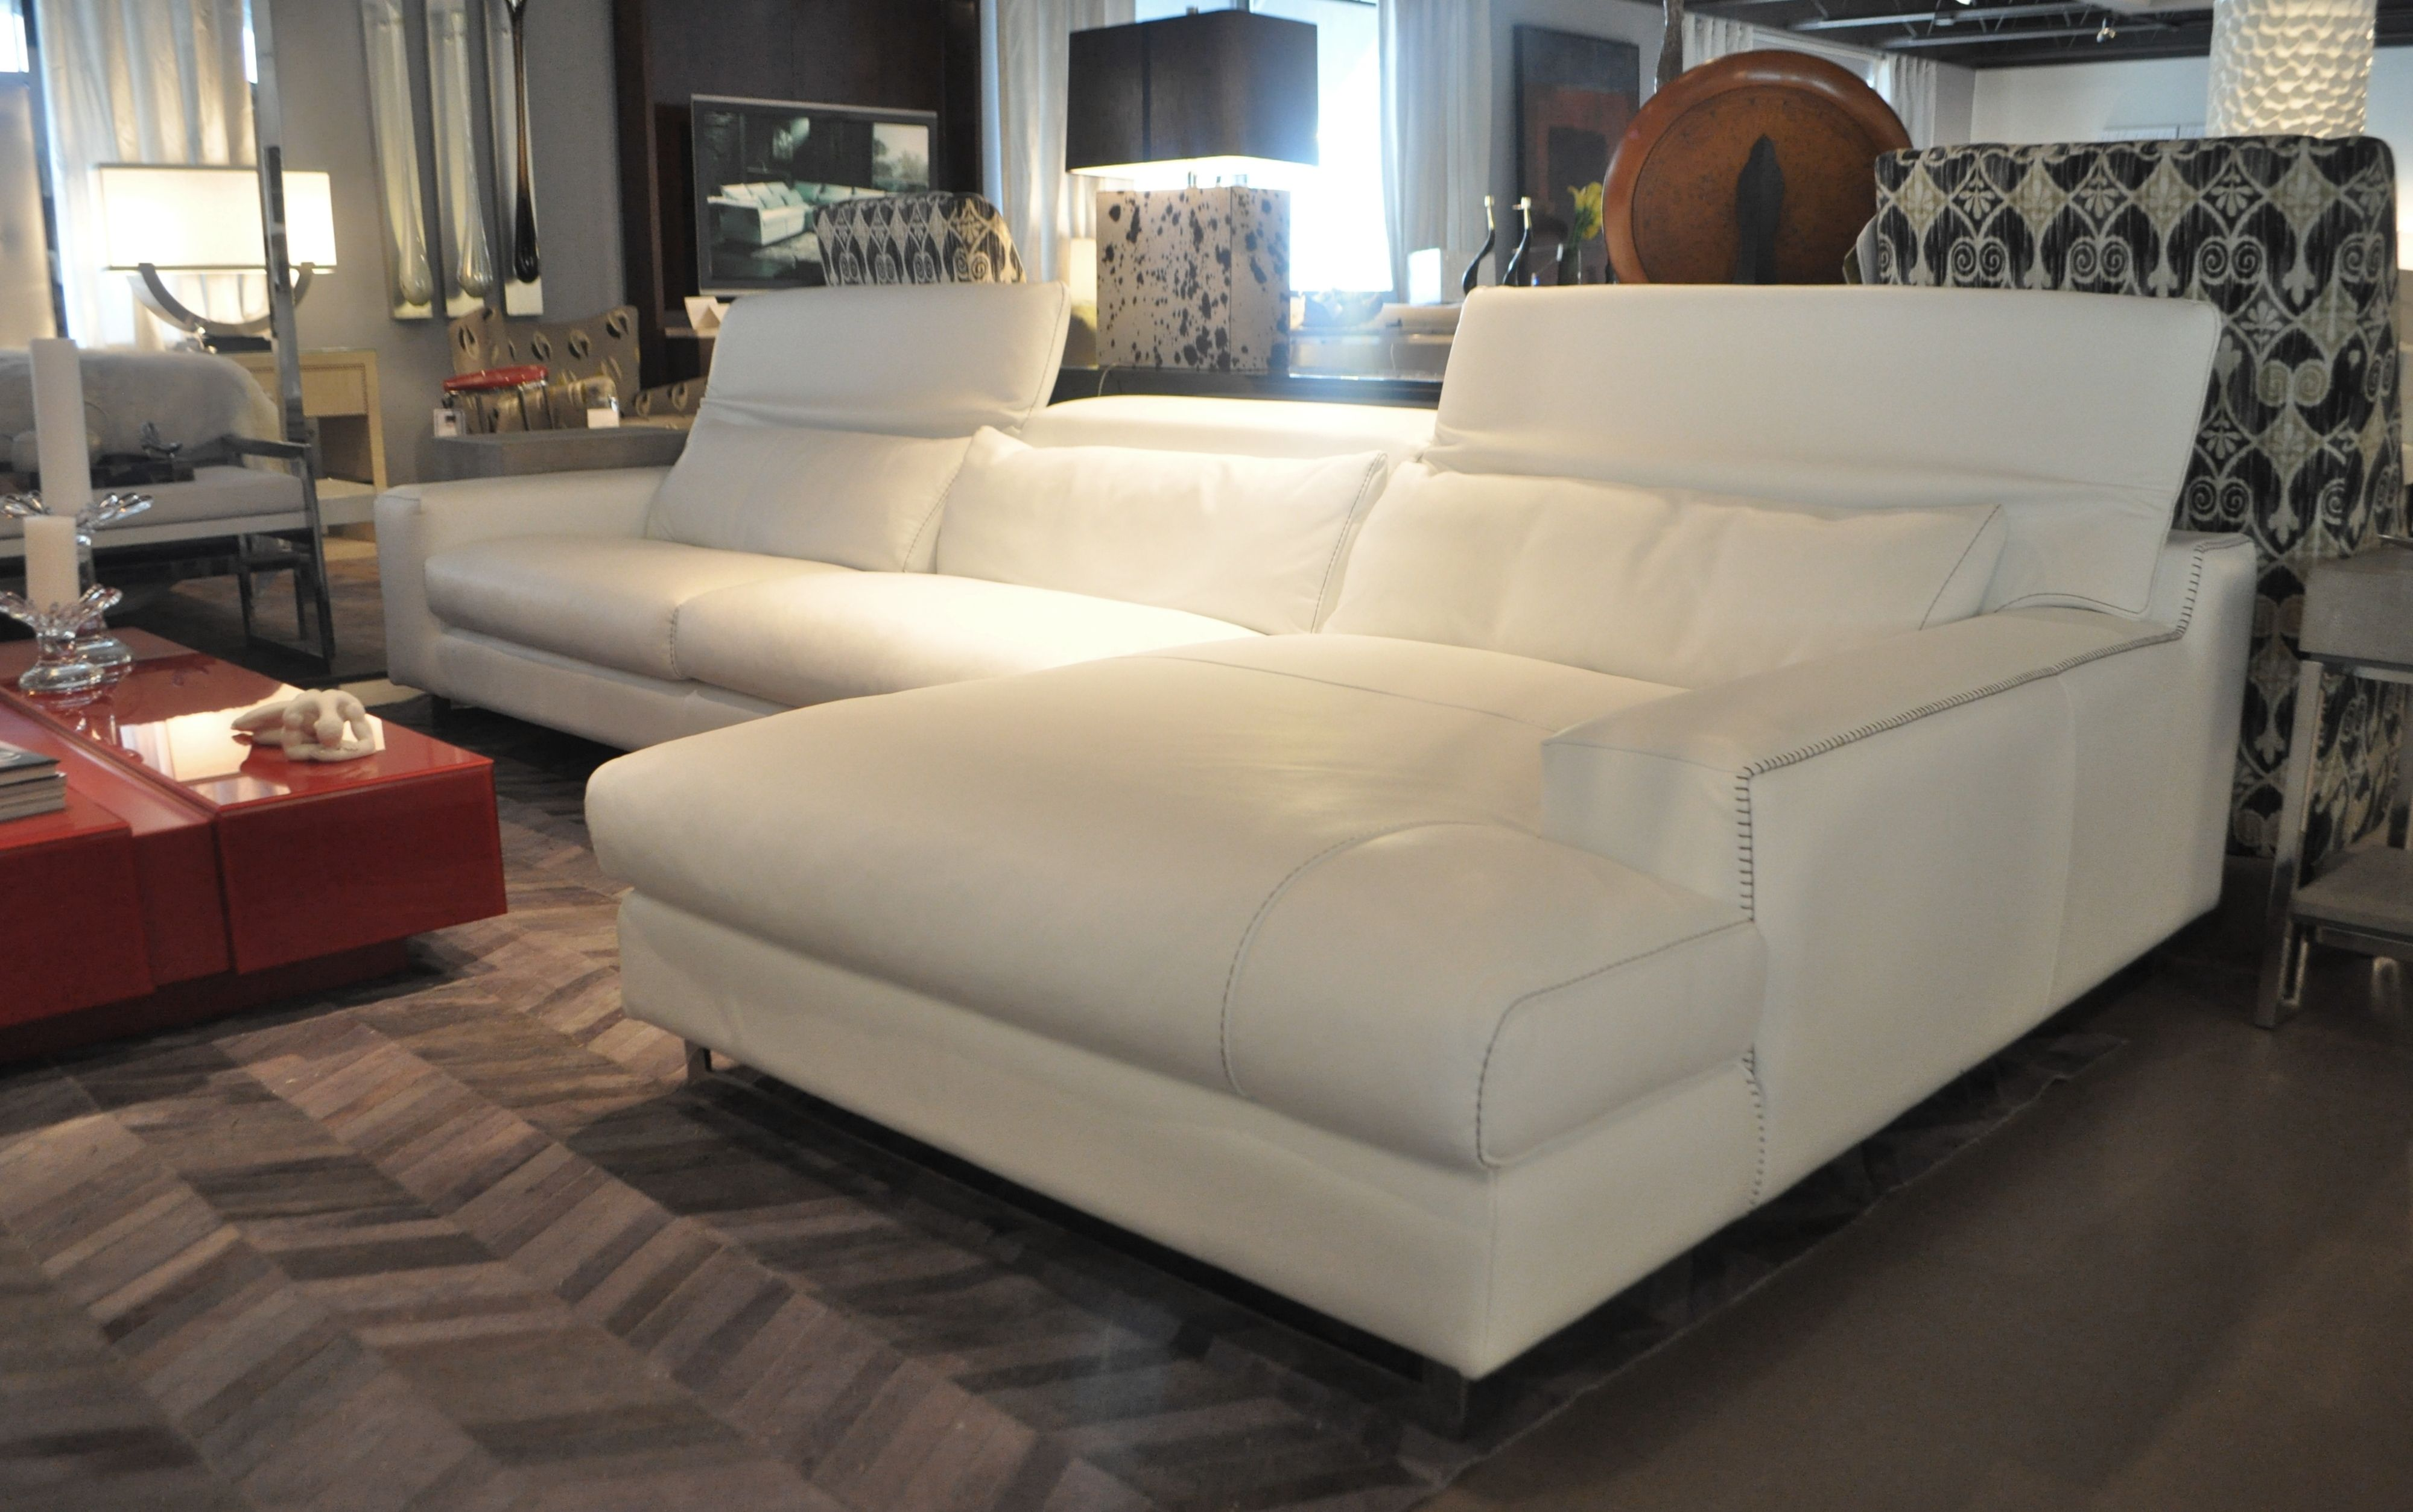 White Leather Sectional   Home decor, Home, Apartment style